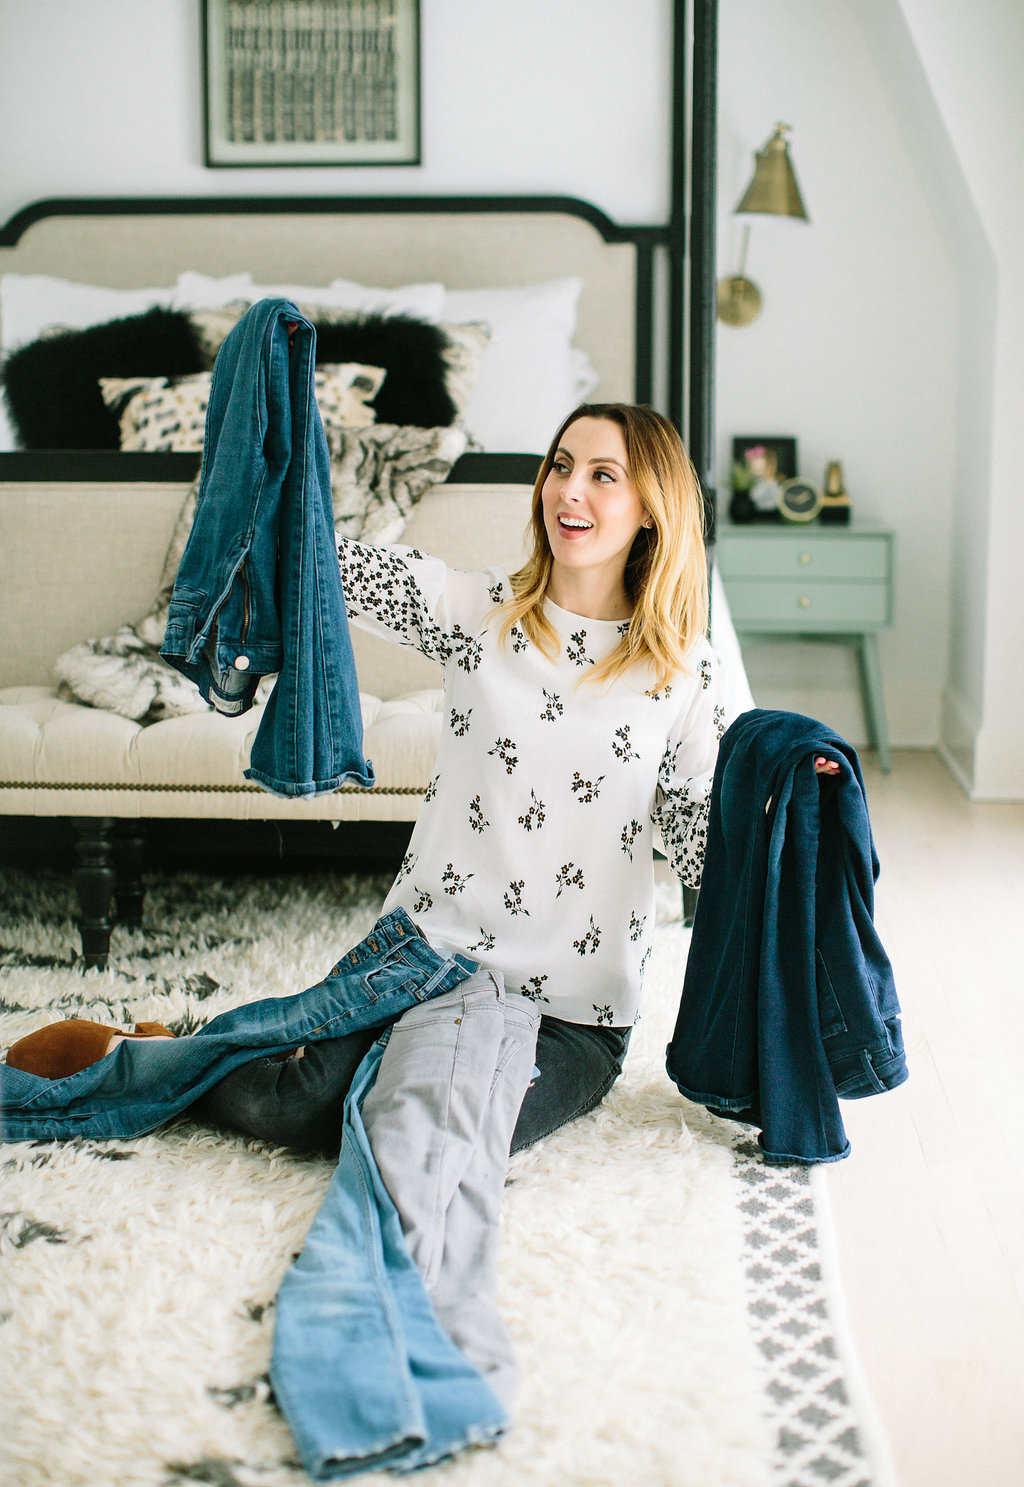 Eva Amurri Martino sits with a pile of jeans on her lap as she cleans out her closet